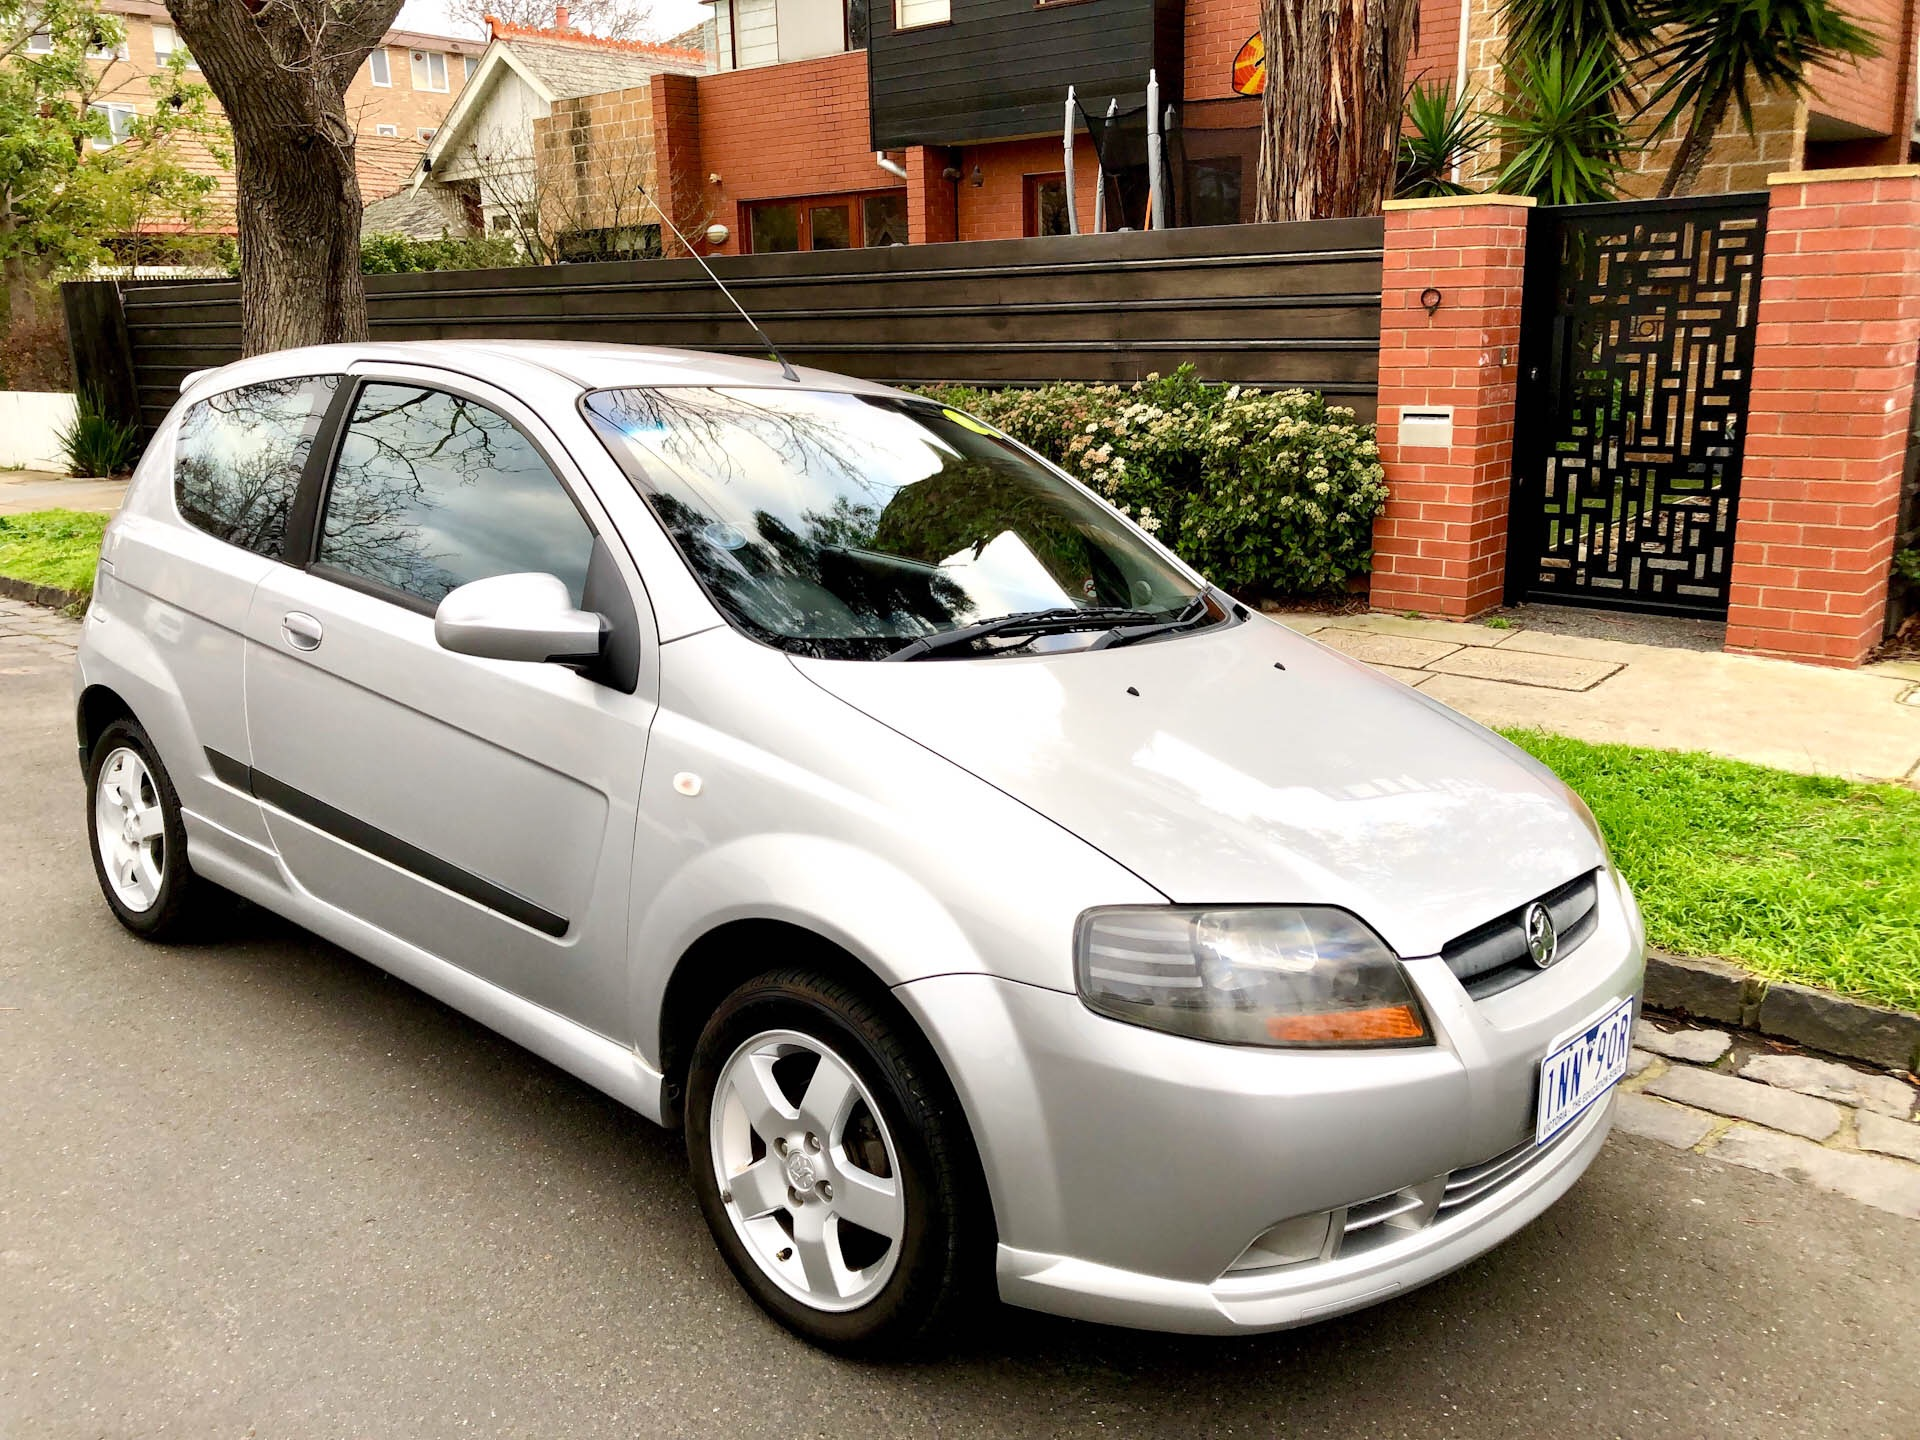 Picture of Dennis' 2007 Holden Barina